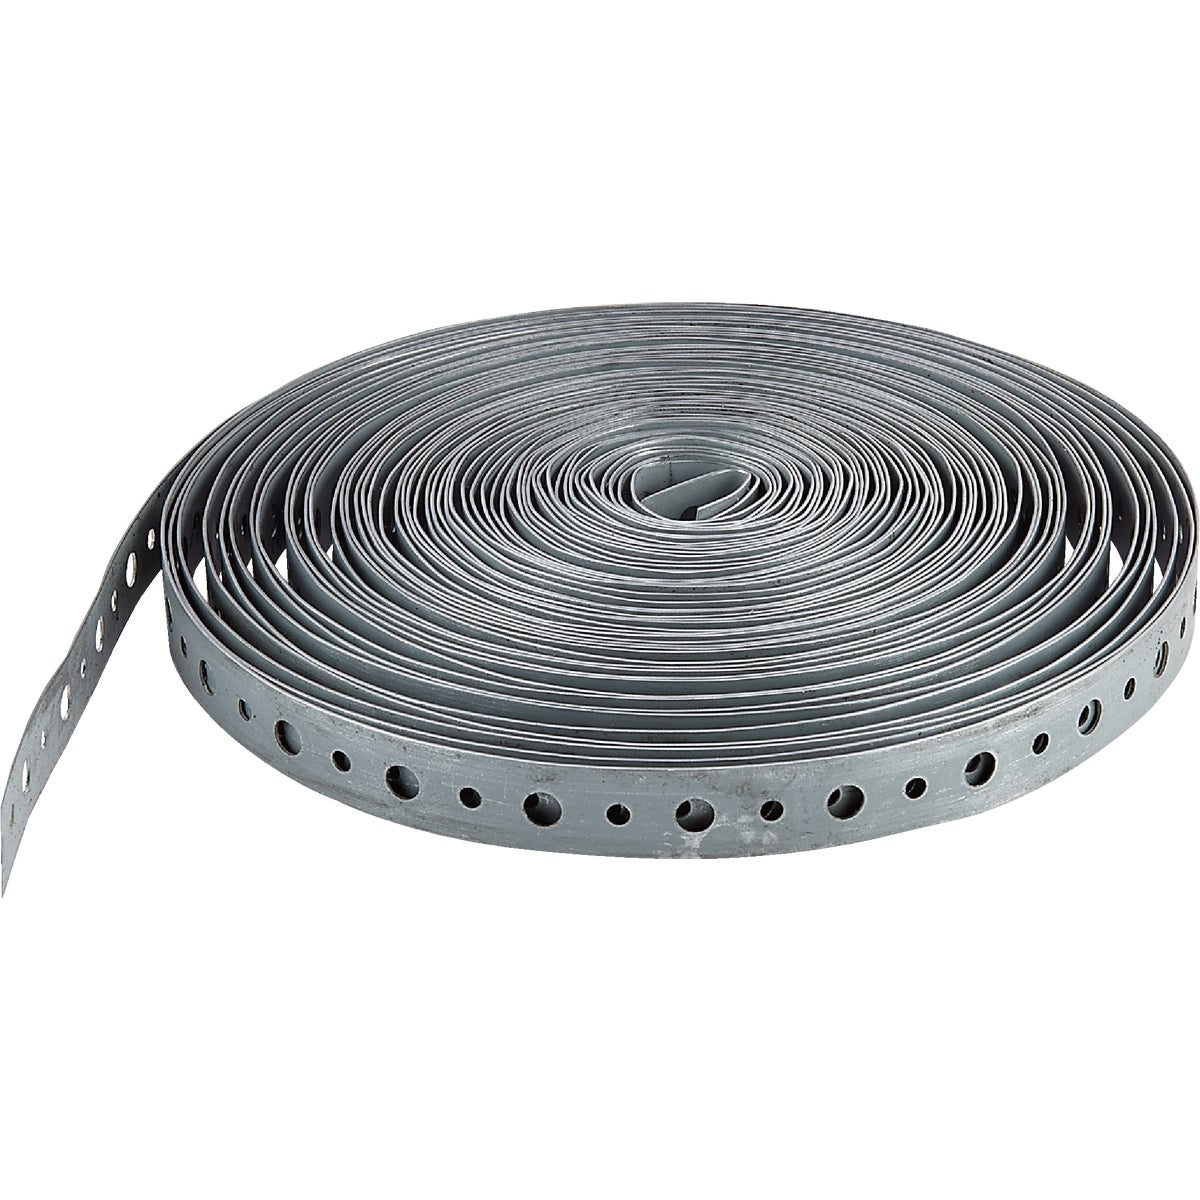 "3/4""X10' GALV STRAP - H20-002 by Jones Stephens Corp"